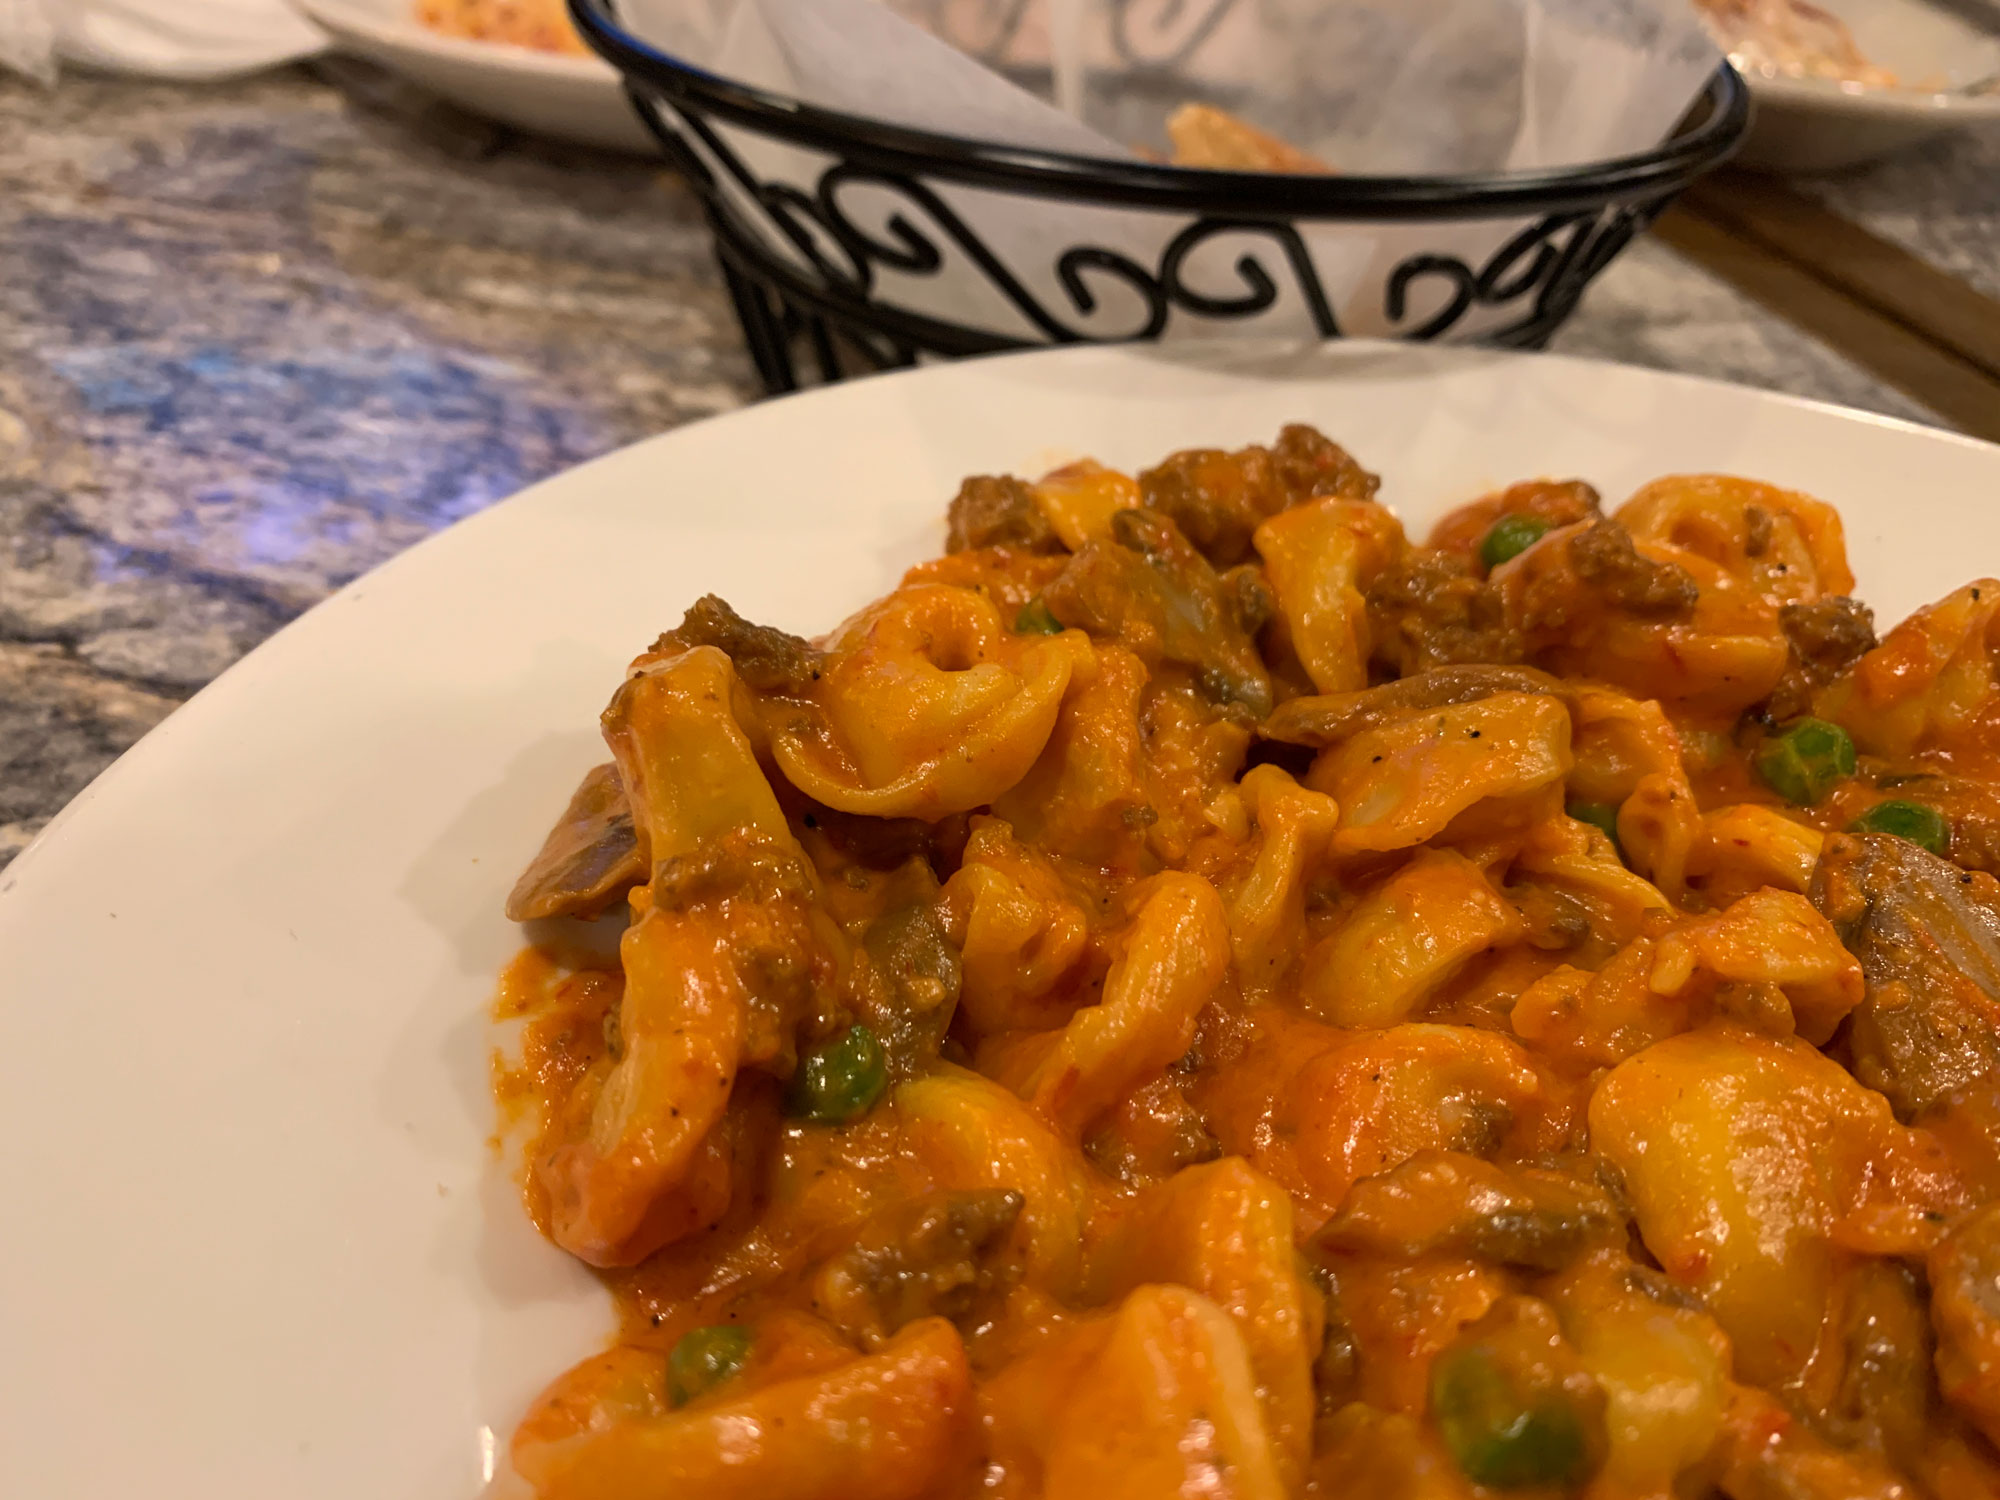 A plate of tortellini topped with meat sauce, peas and mushrooms from Gino's Cafe in Shillington